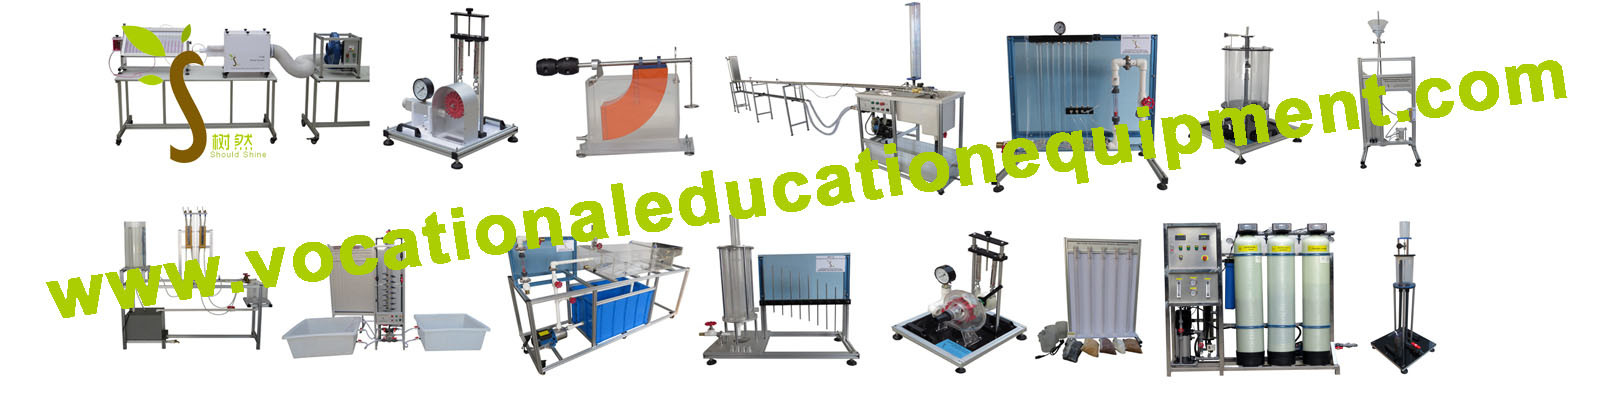 Refrigeration Training Equipment